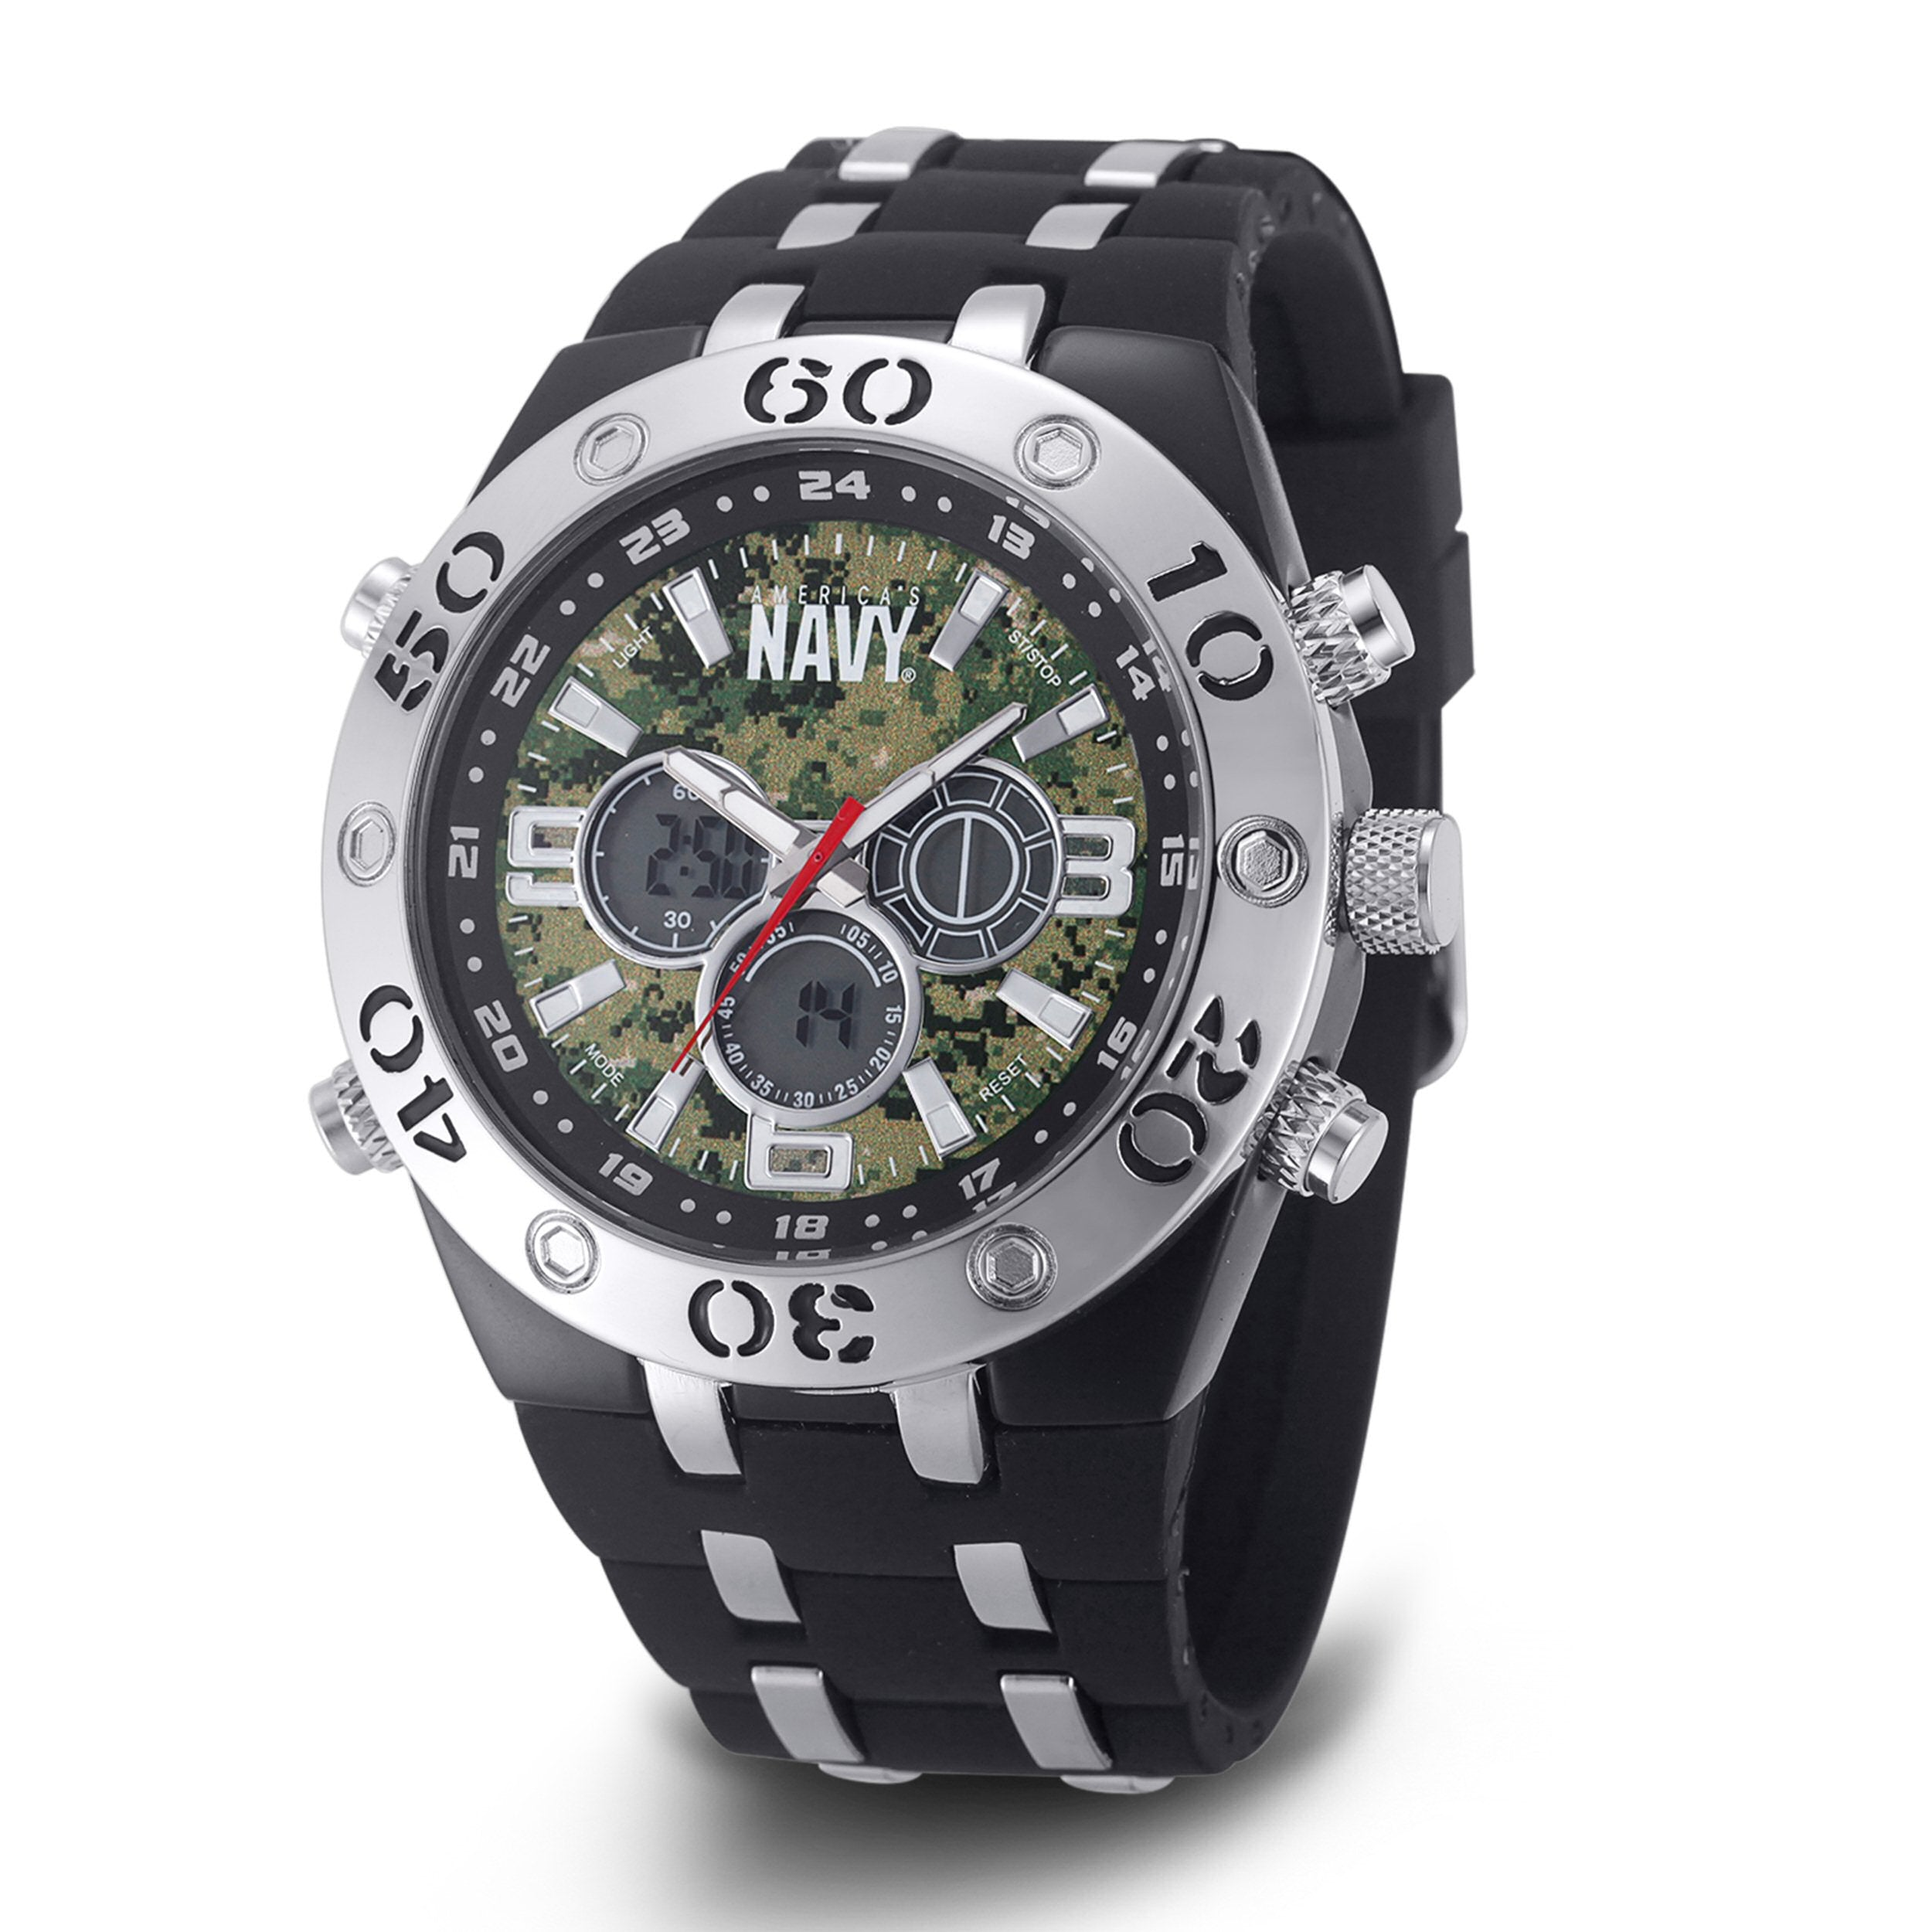 Men's U.S. Navy 37400040 C23 Analog-Digital Display Multifunction Quartz Watch with Camouflage Dial